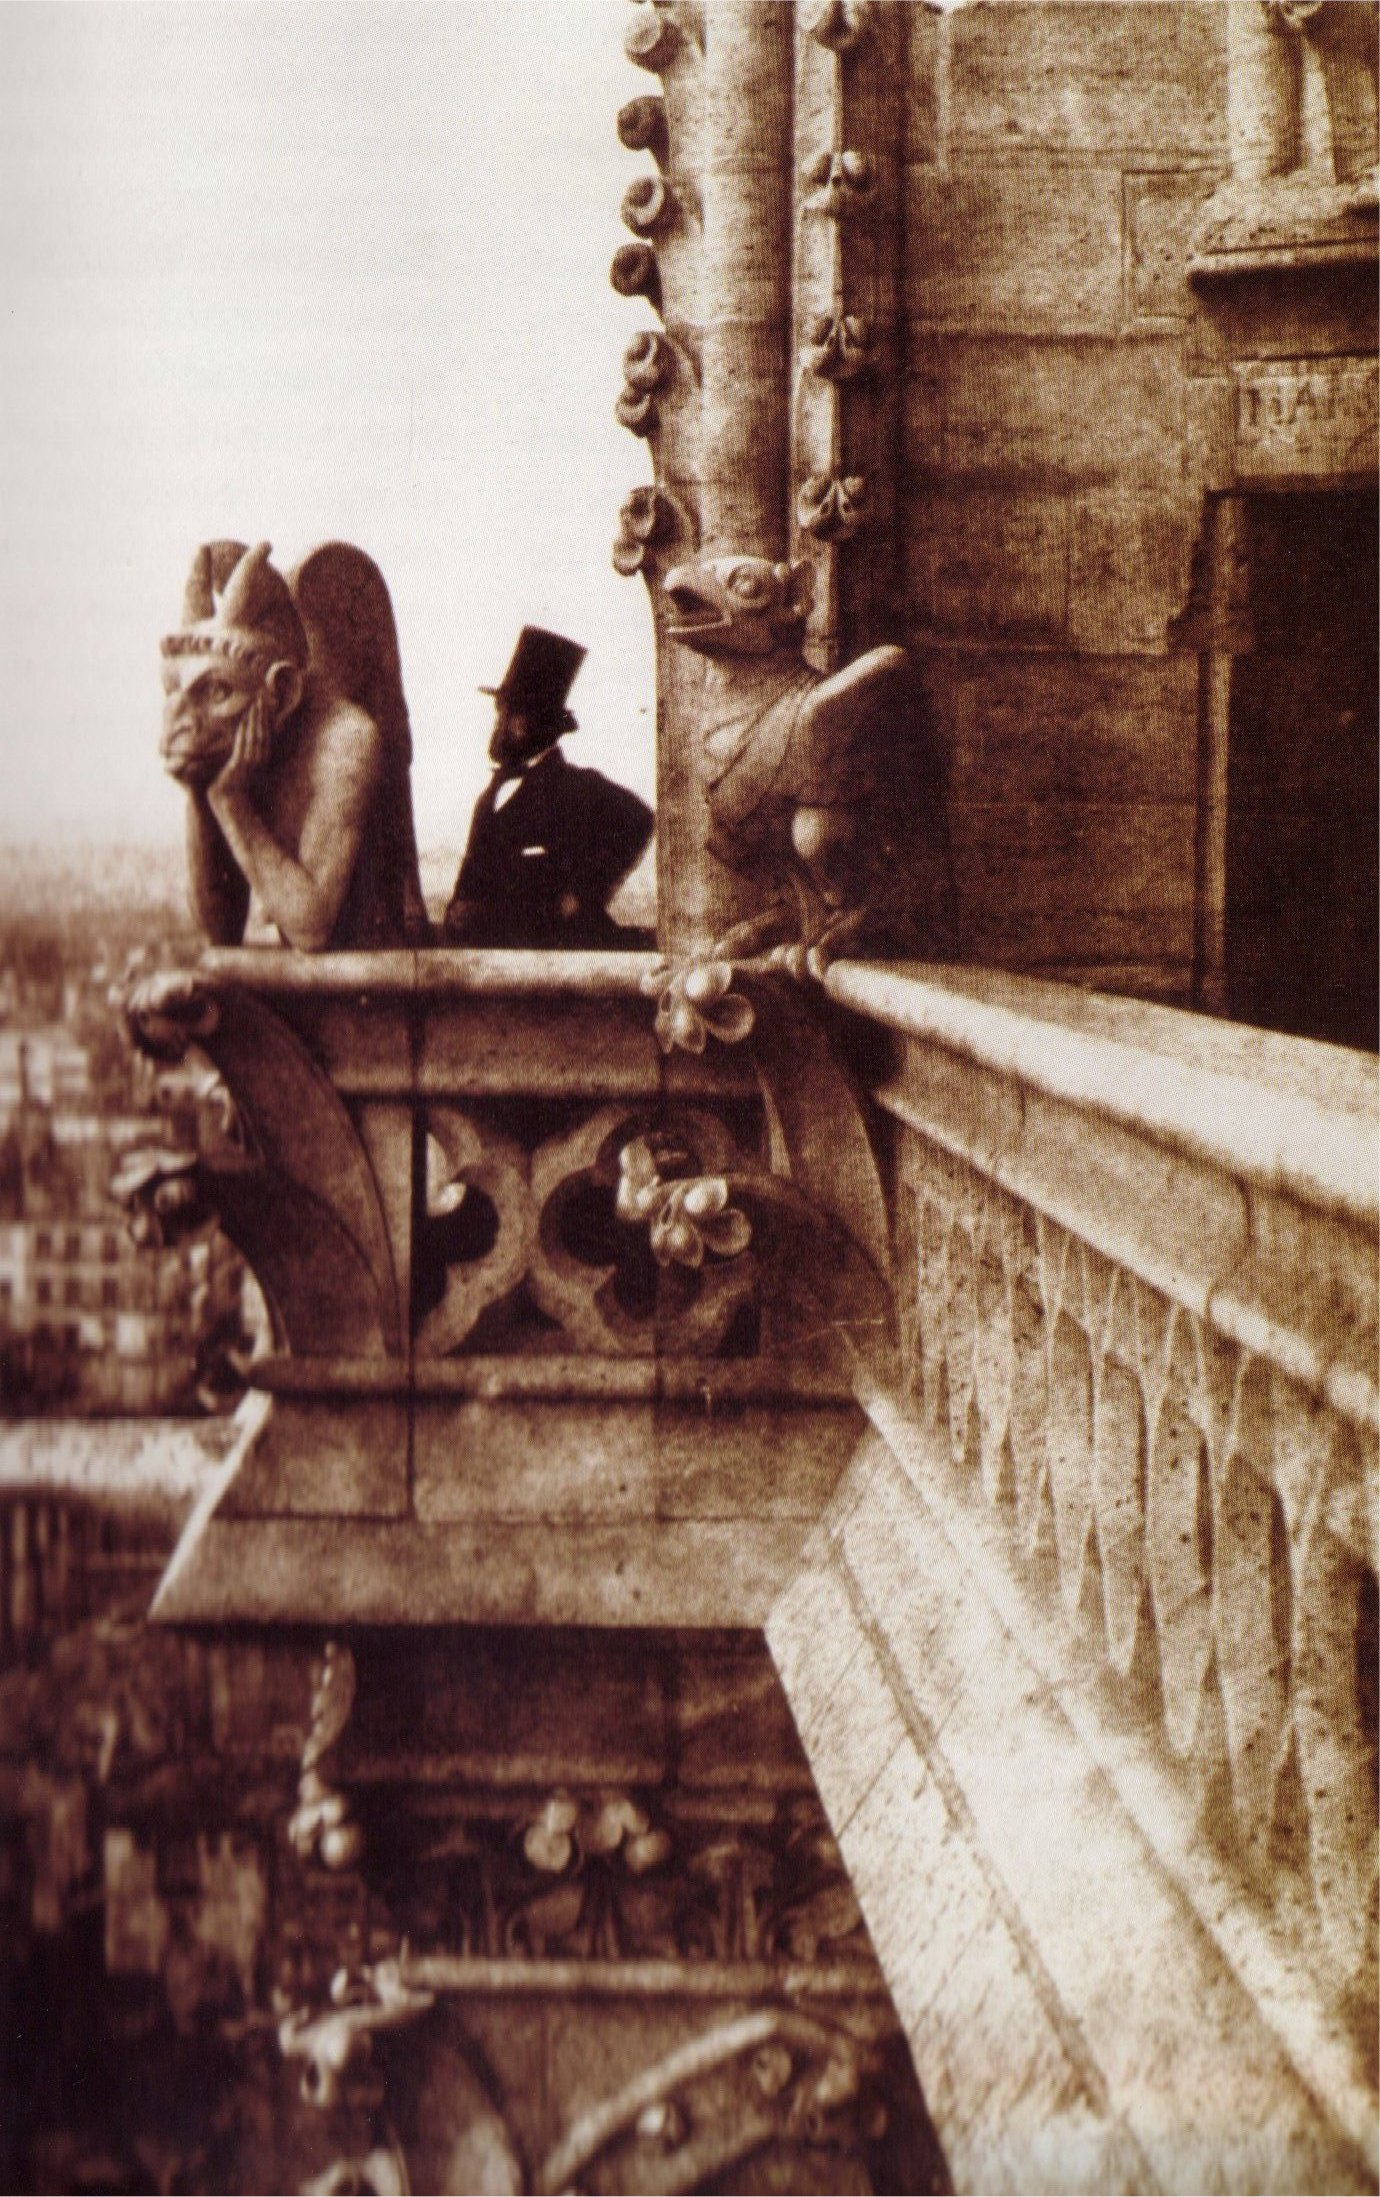 A picture taken by en:Charles Negre in en:1853. Of Henri Le Secq near the 'Stryge' chimera on en:Notre Dame de Paris.